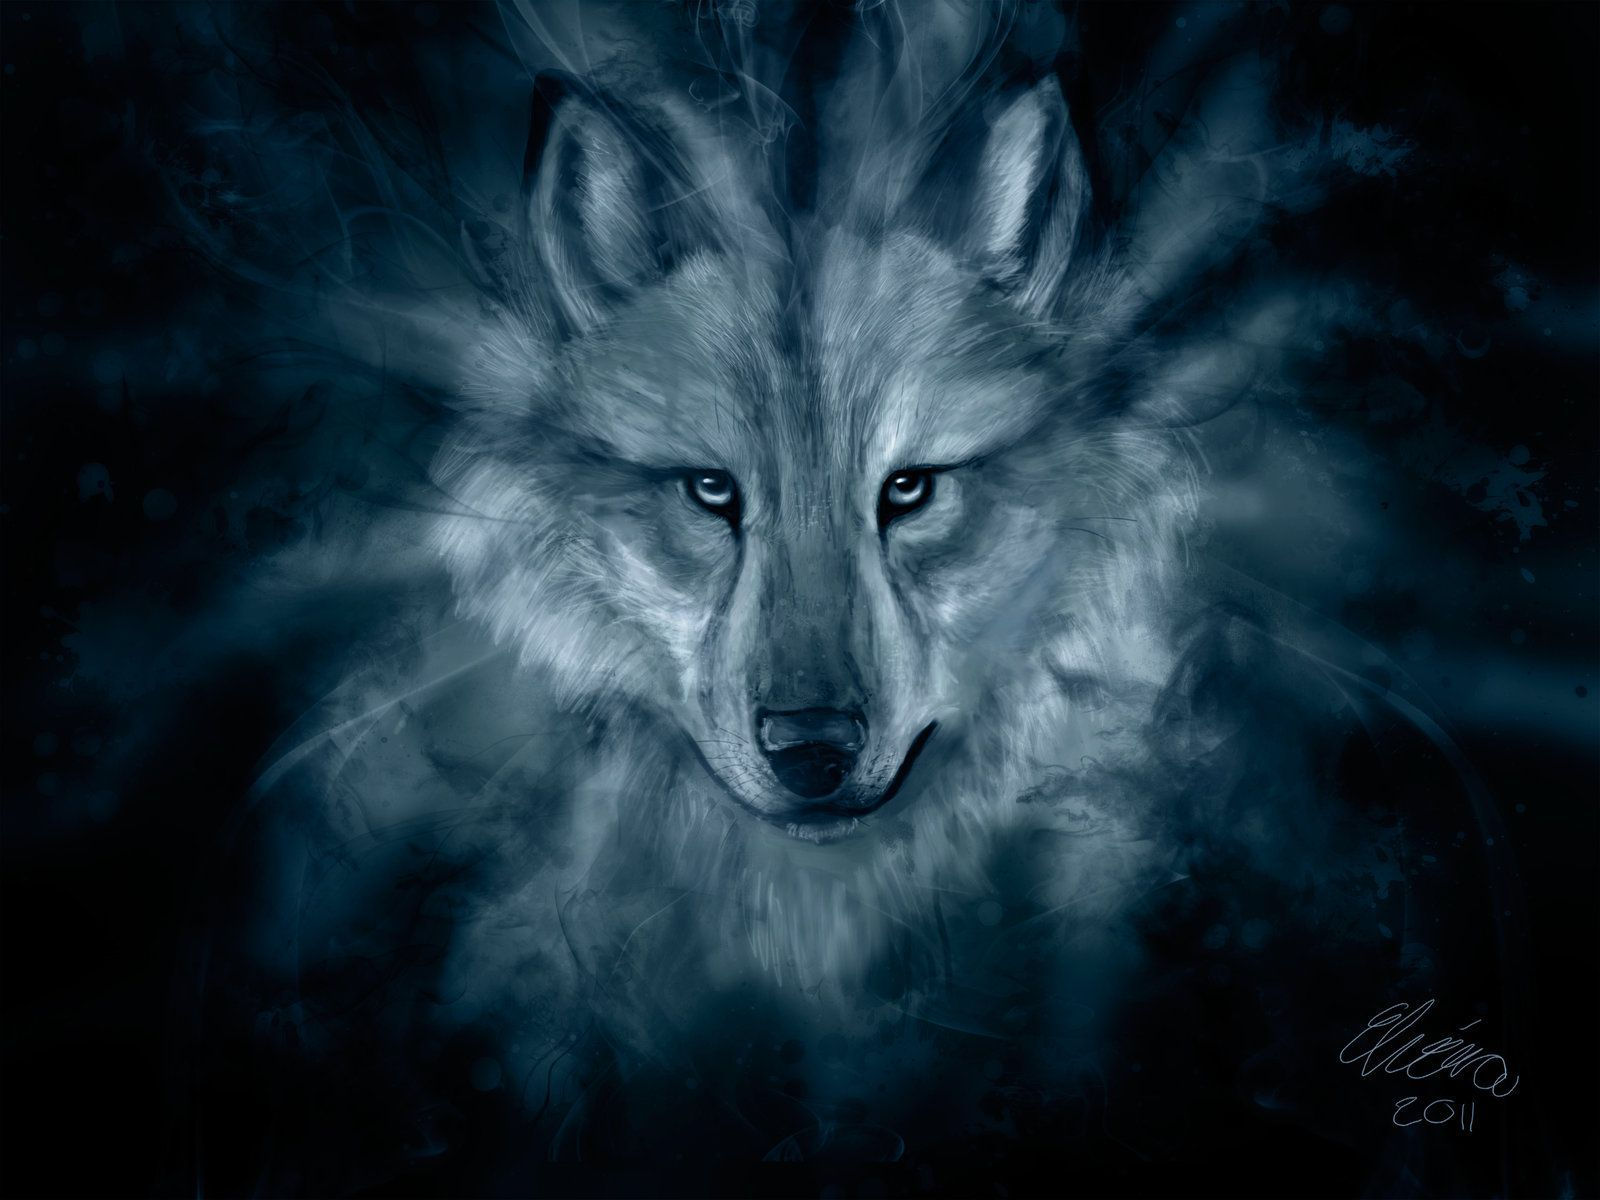 Ice Spirit Wolf Wallpapers - Top Free Ice Spirit Wolf Backgrounds